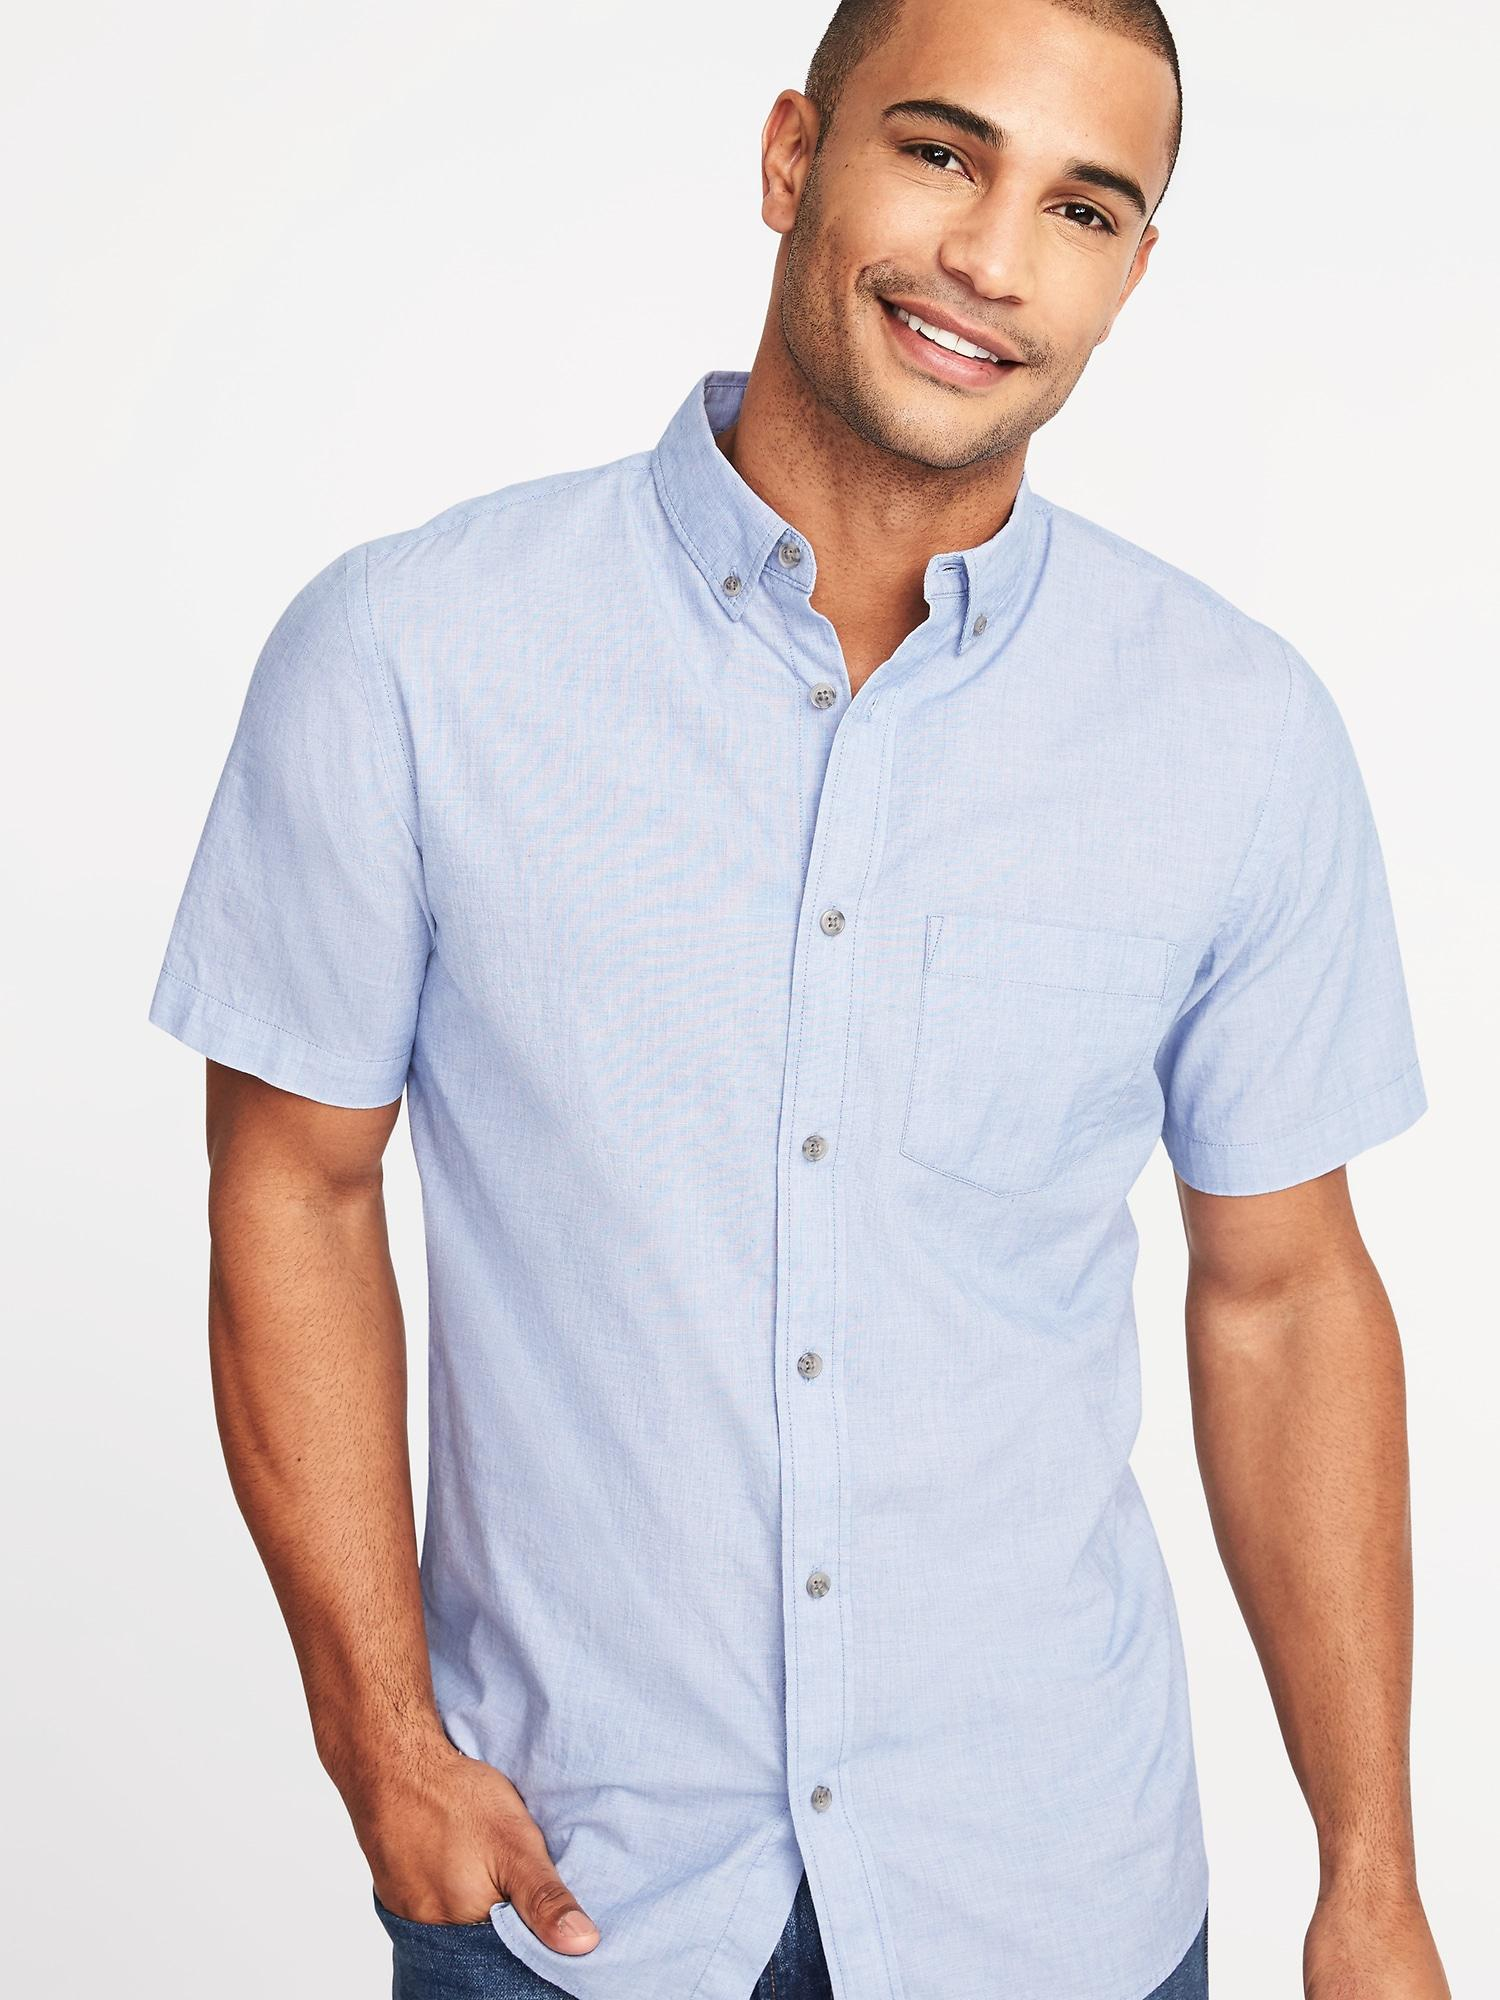 Lyst - Old Navy Slim-fit Built-in Flex Everyday Shirt in Blue for Men 00722494e